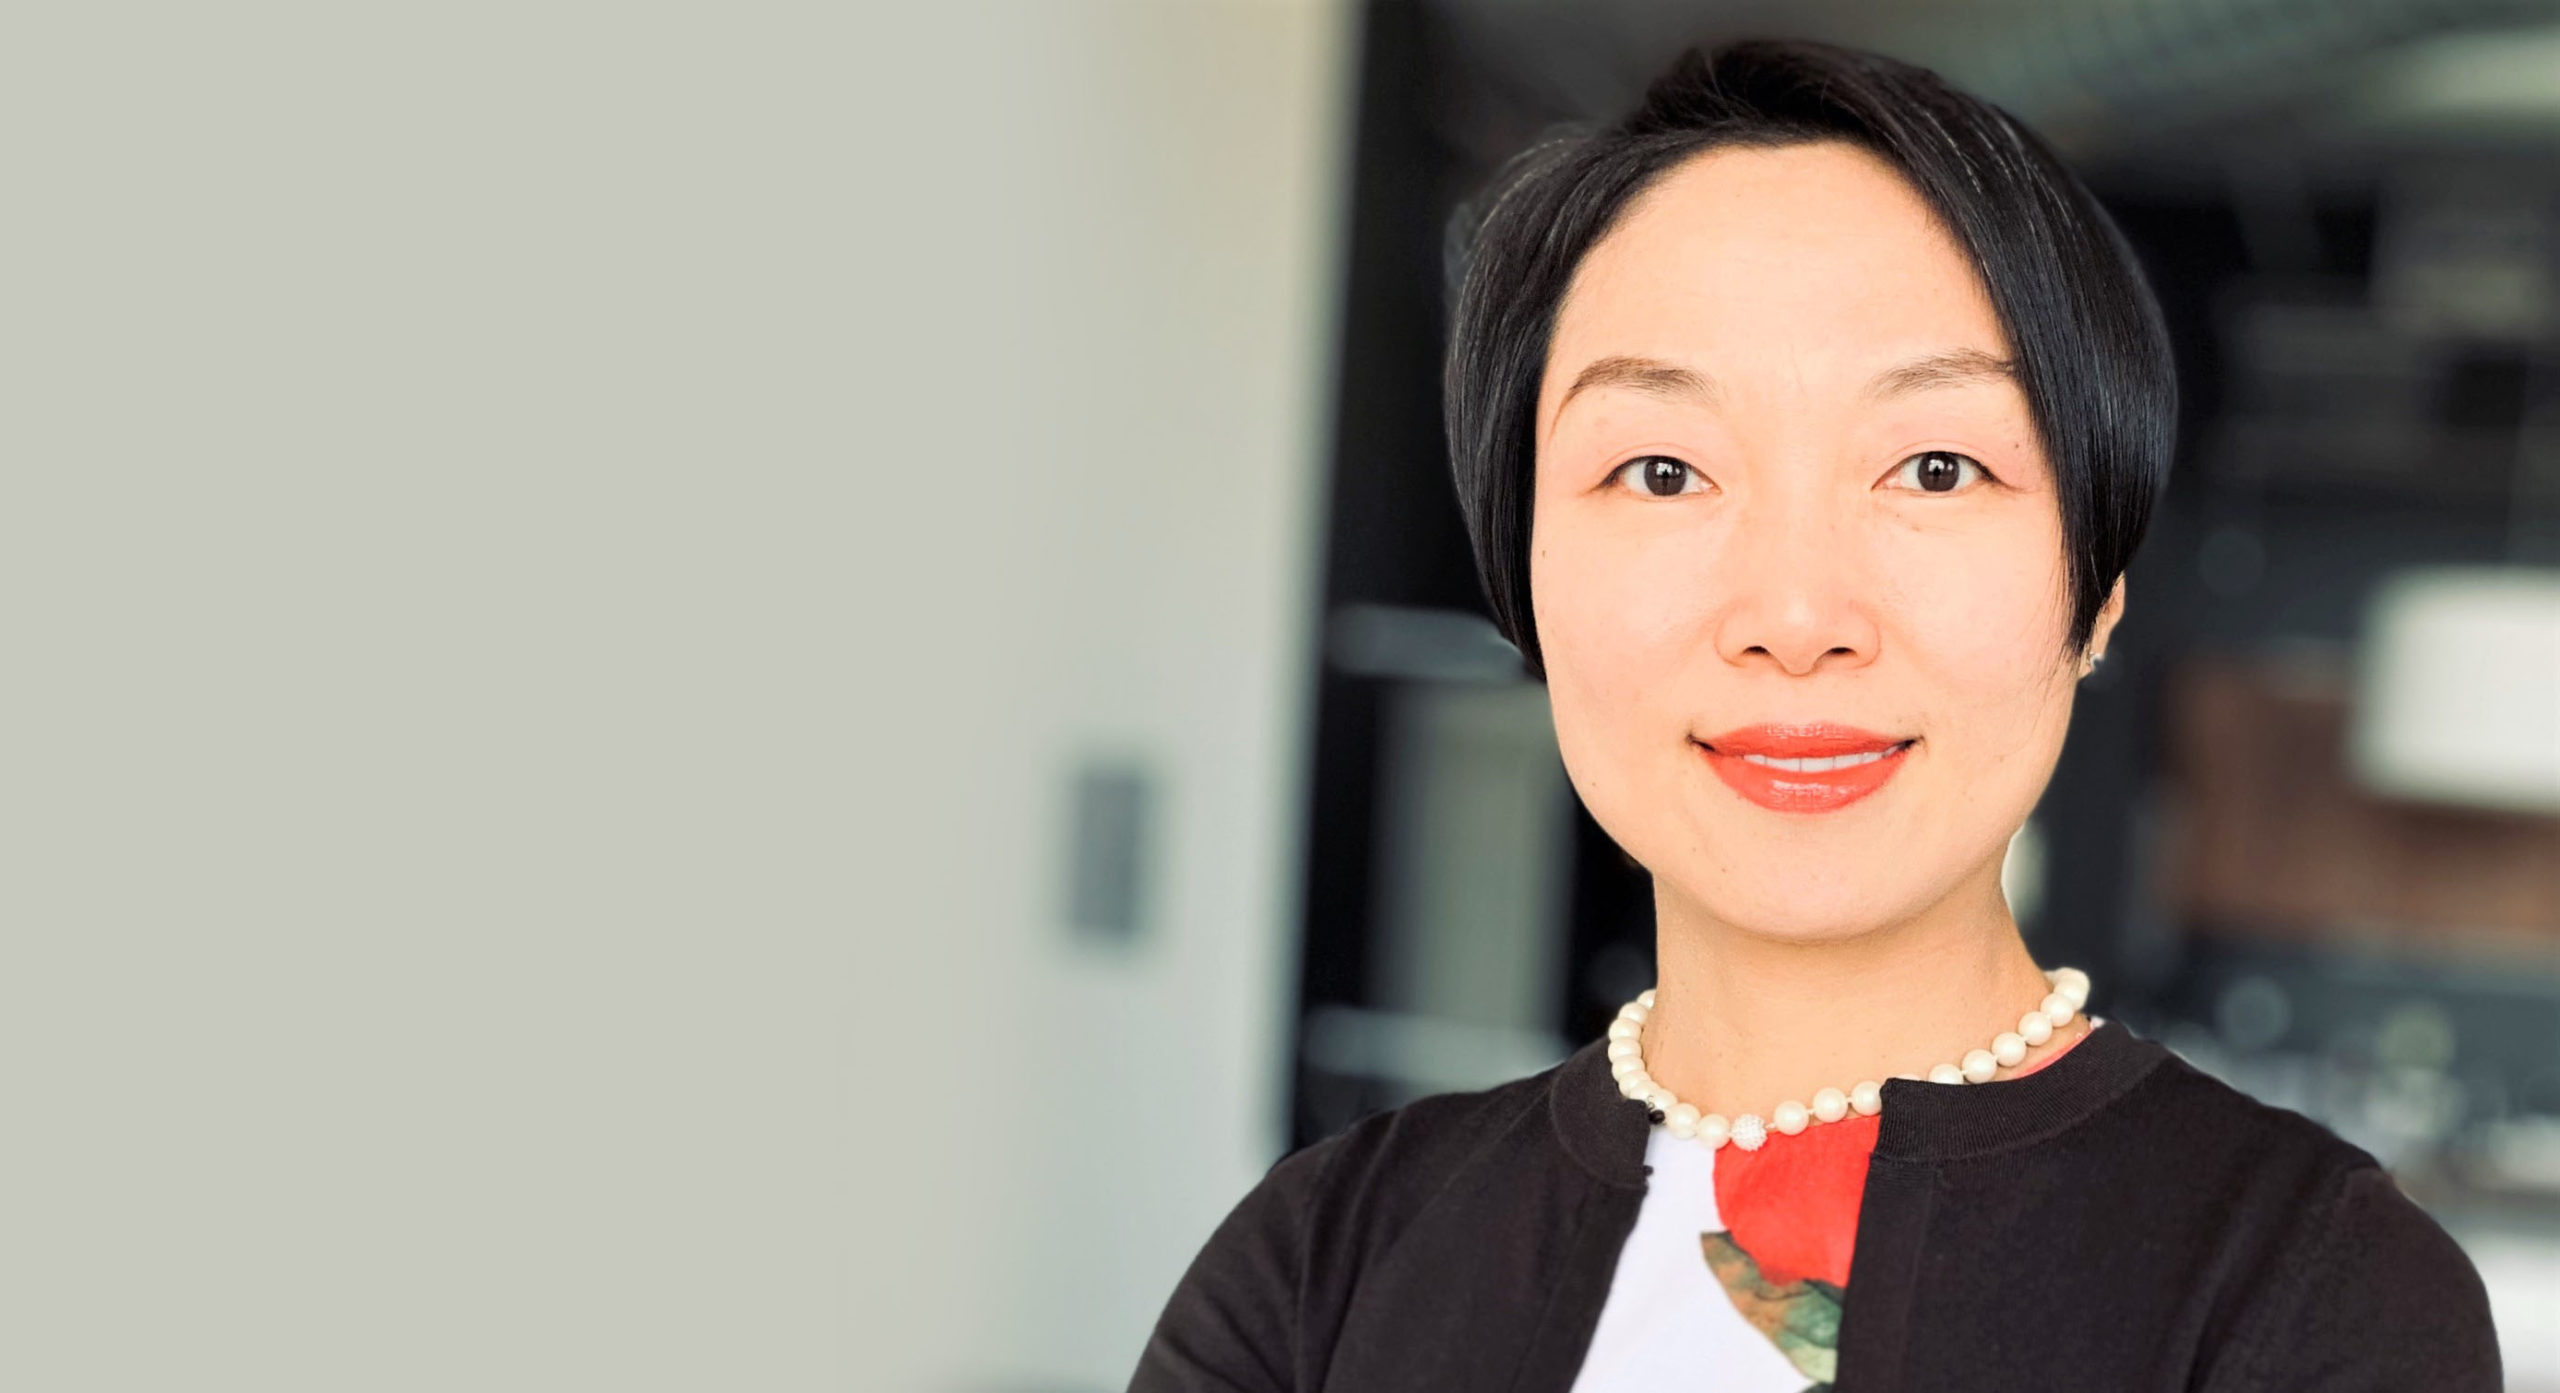 Genective names <br/>Qiaoni Linda Jing<br/> as Chief Executive Officer